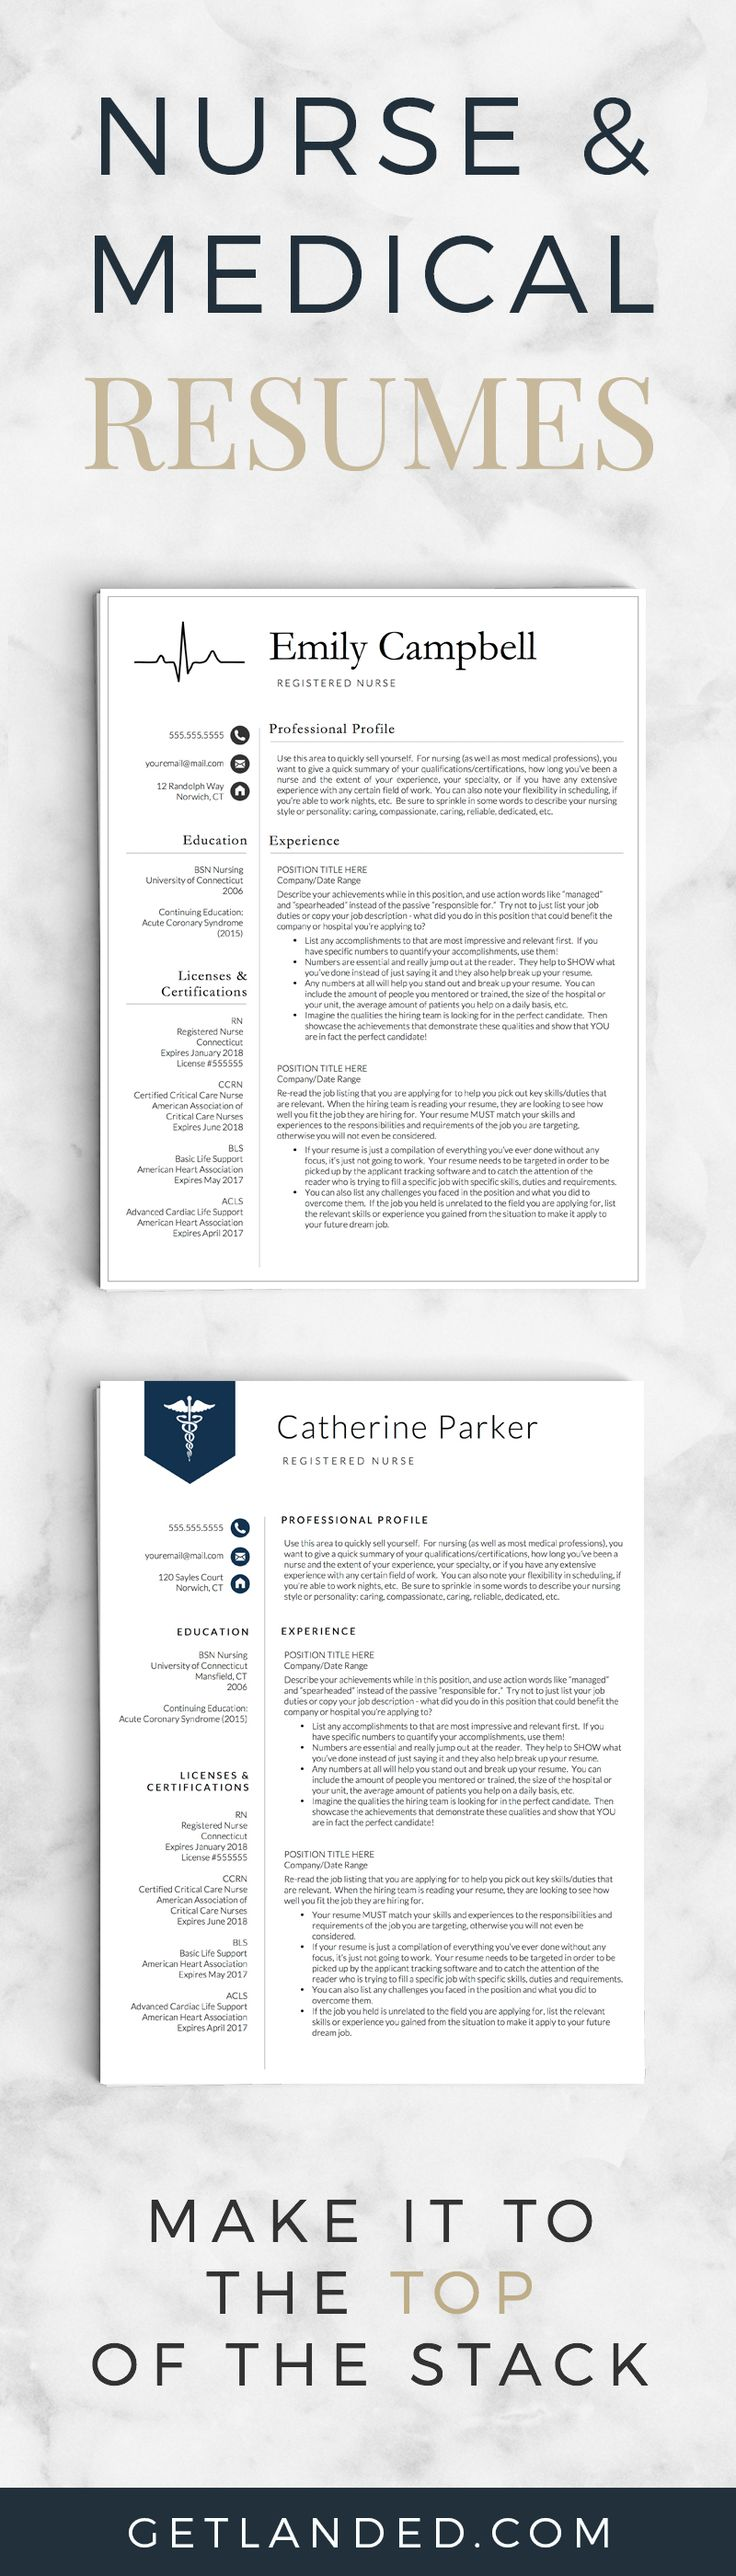 17 best ideas about rn resume nursing resume nurse resume templates medical resumes resume templates specifically designed for the nursing profession